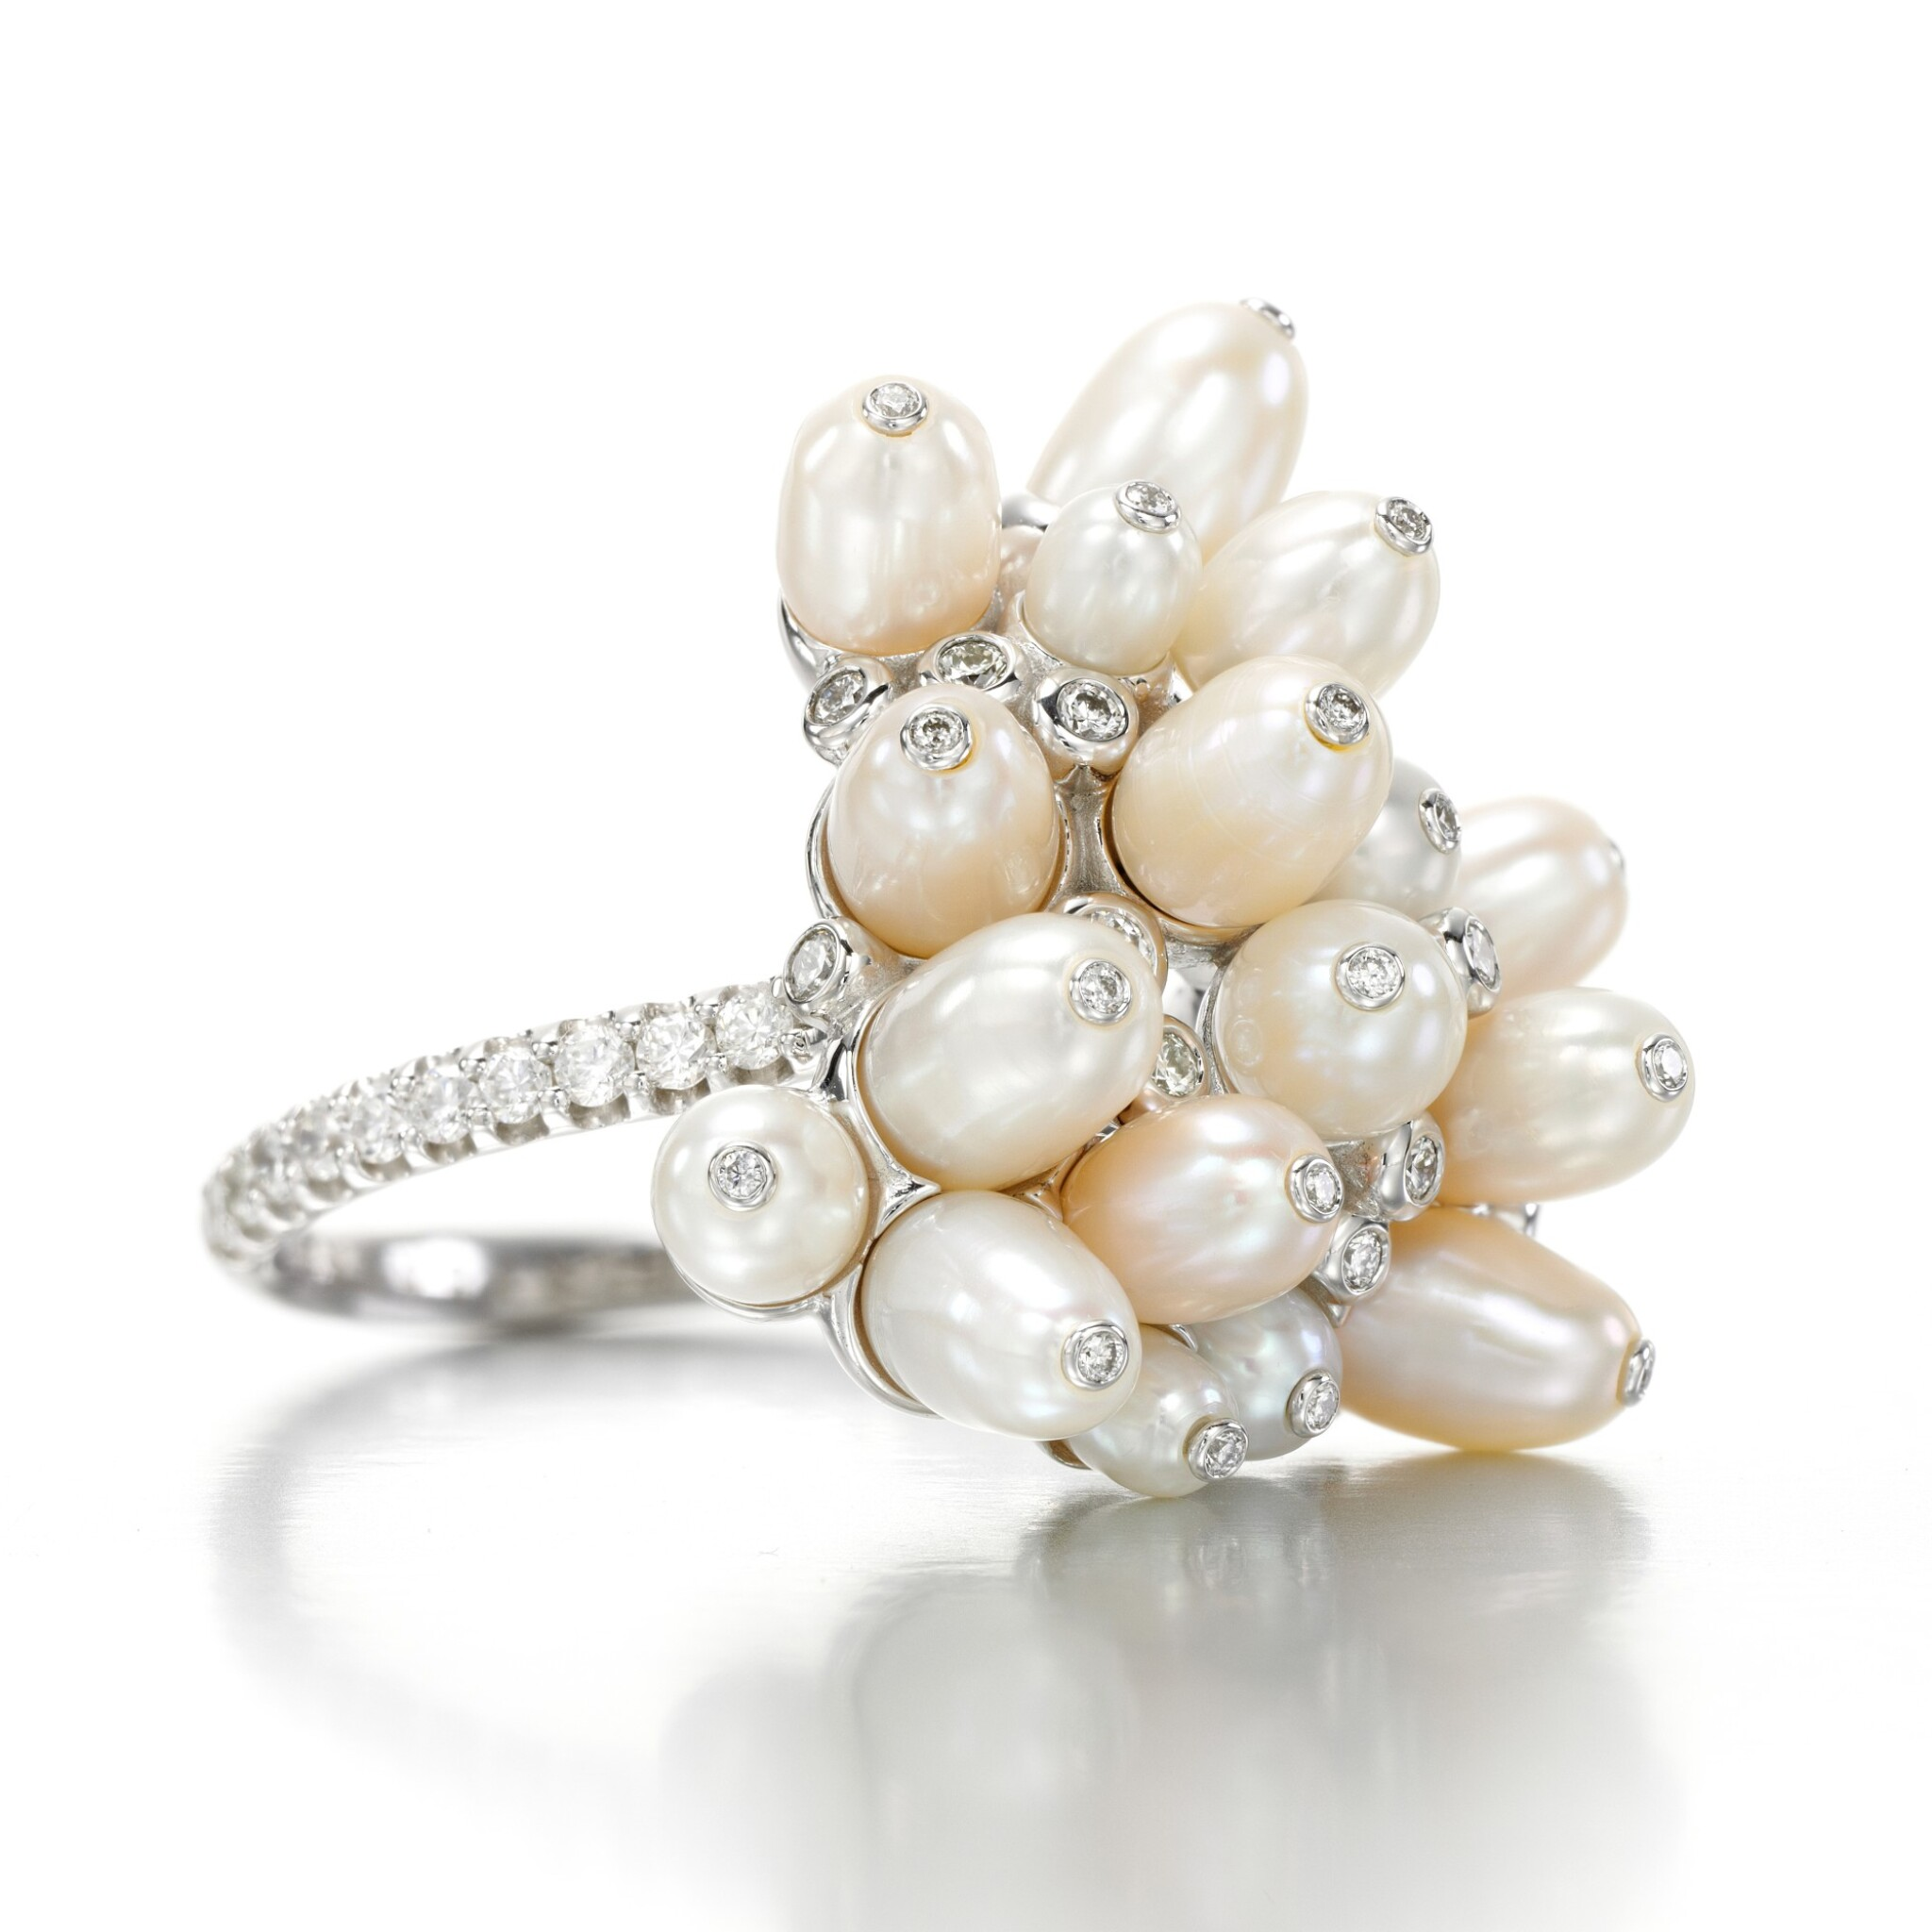 View 1 of Lot 46. Cultured pearl and diamond ring, 'Tzigane'.